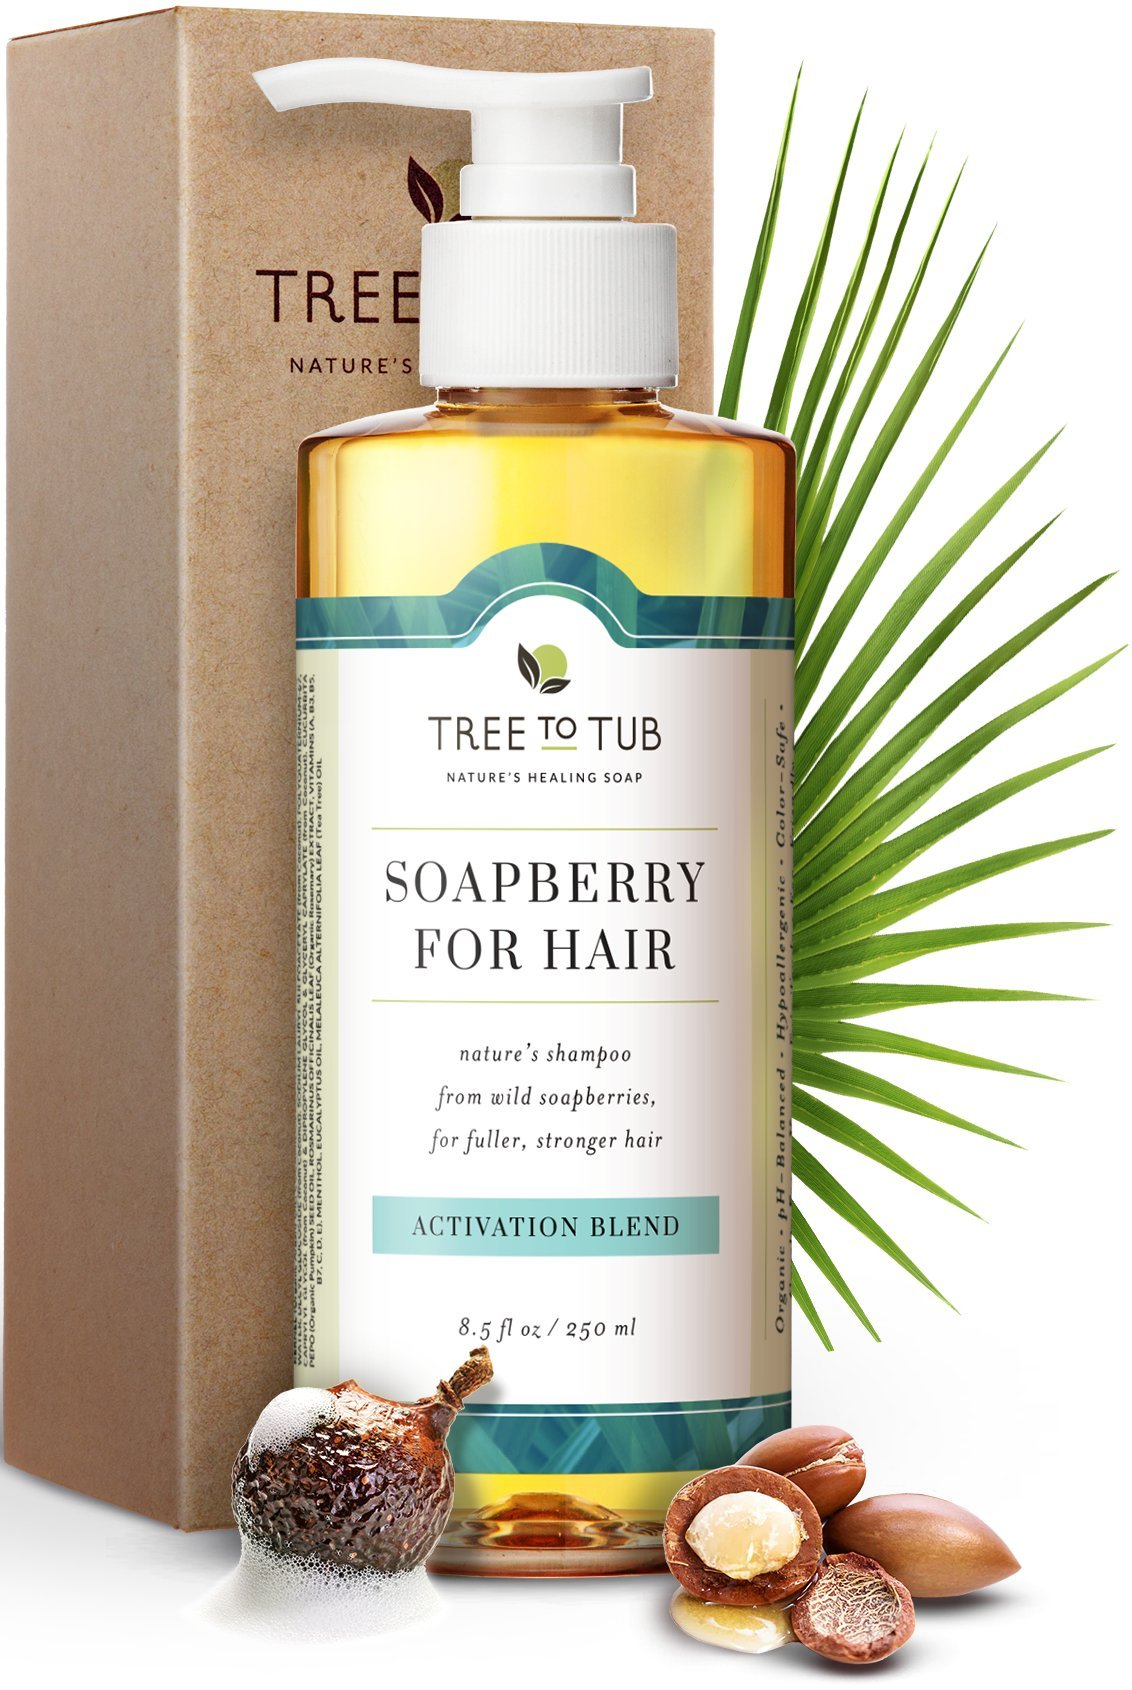 Organic Hair Growth Shampoo-The Only Natural Hair Loss Shampoo that Naturally Activates Hair Follicles with Ayurvedic Soapberry lather & Stimulating Eucalyptus & Tea Tree Oil, 11oz-Tree To Tub